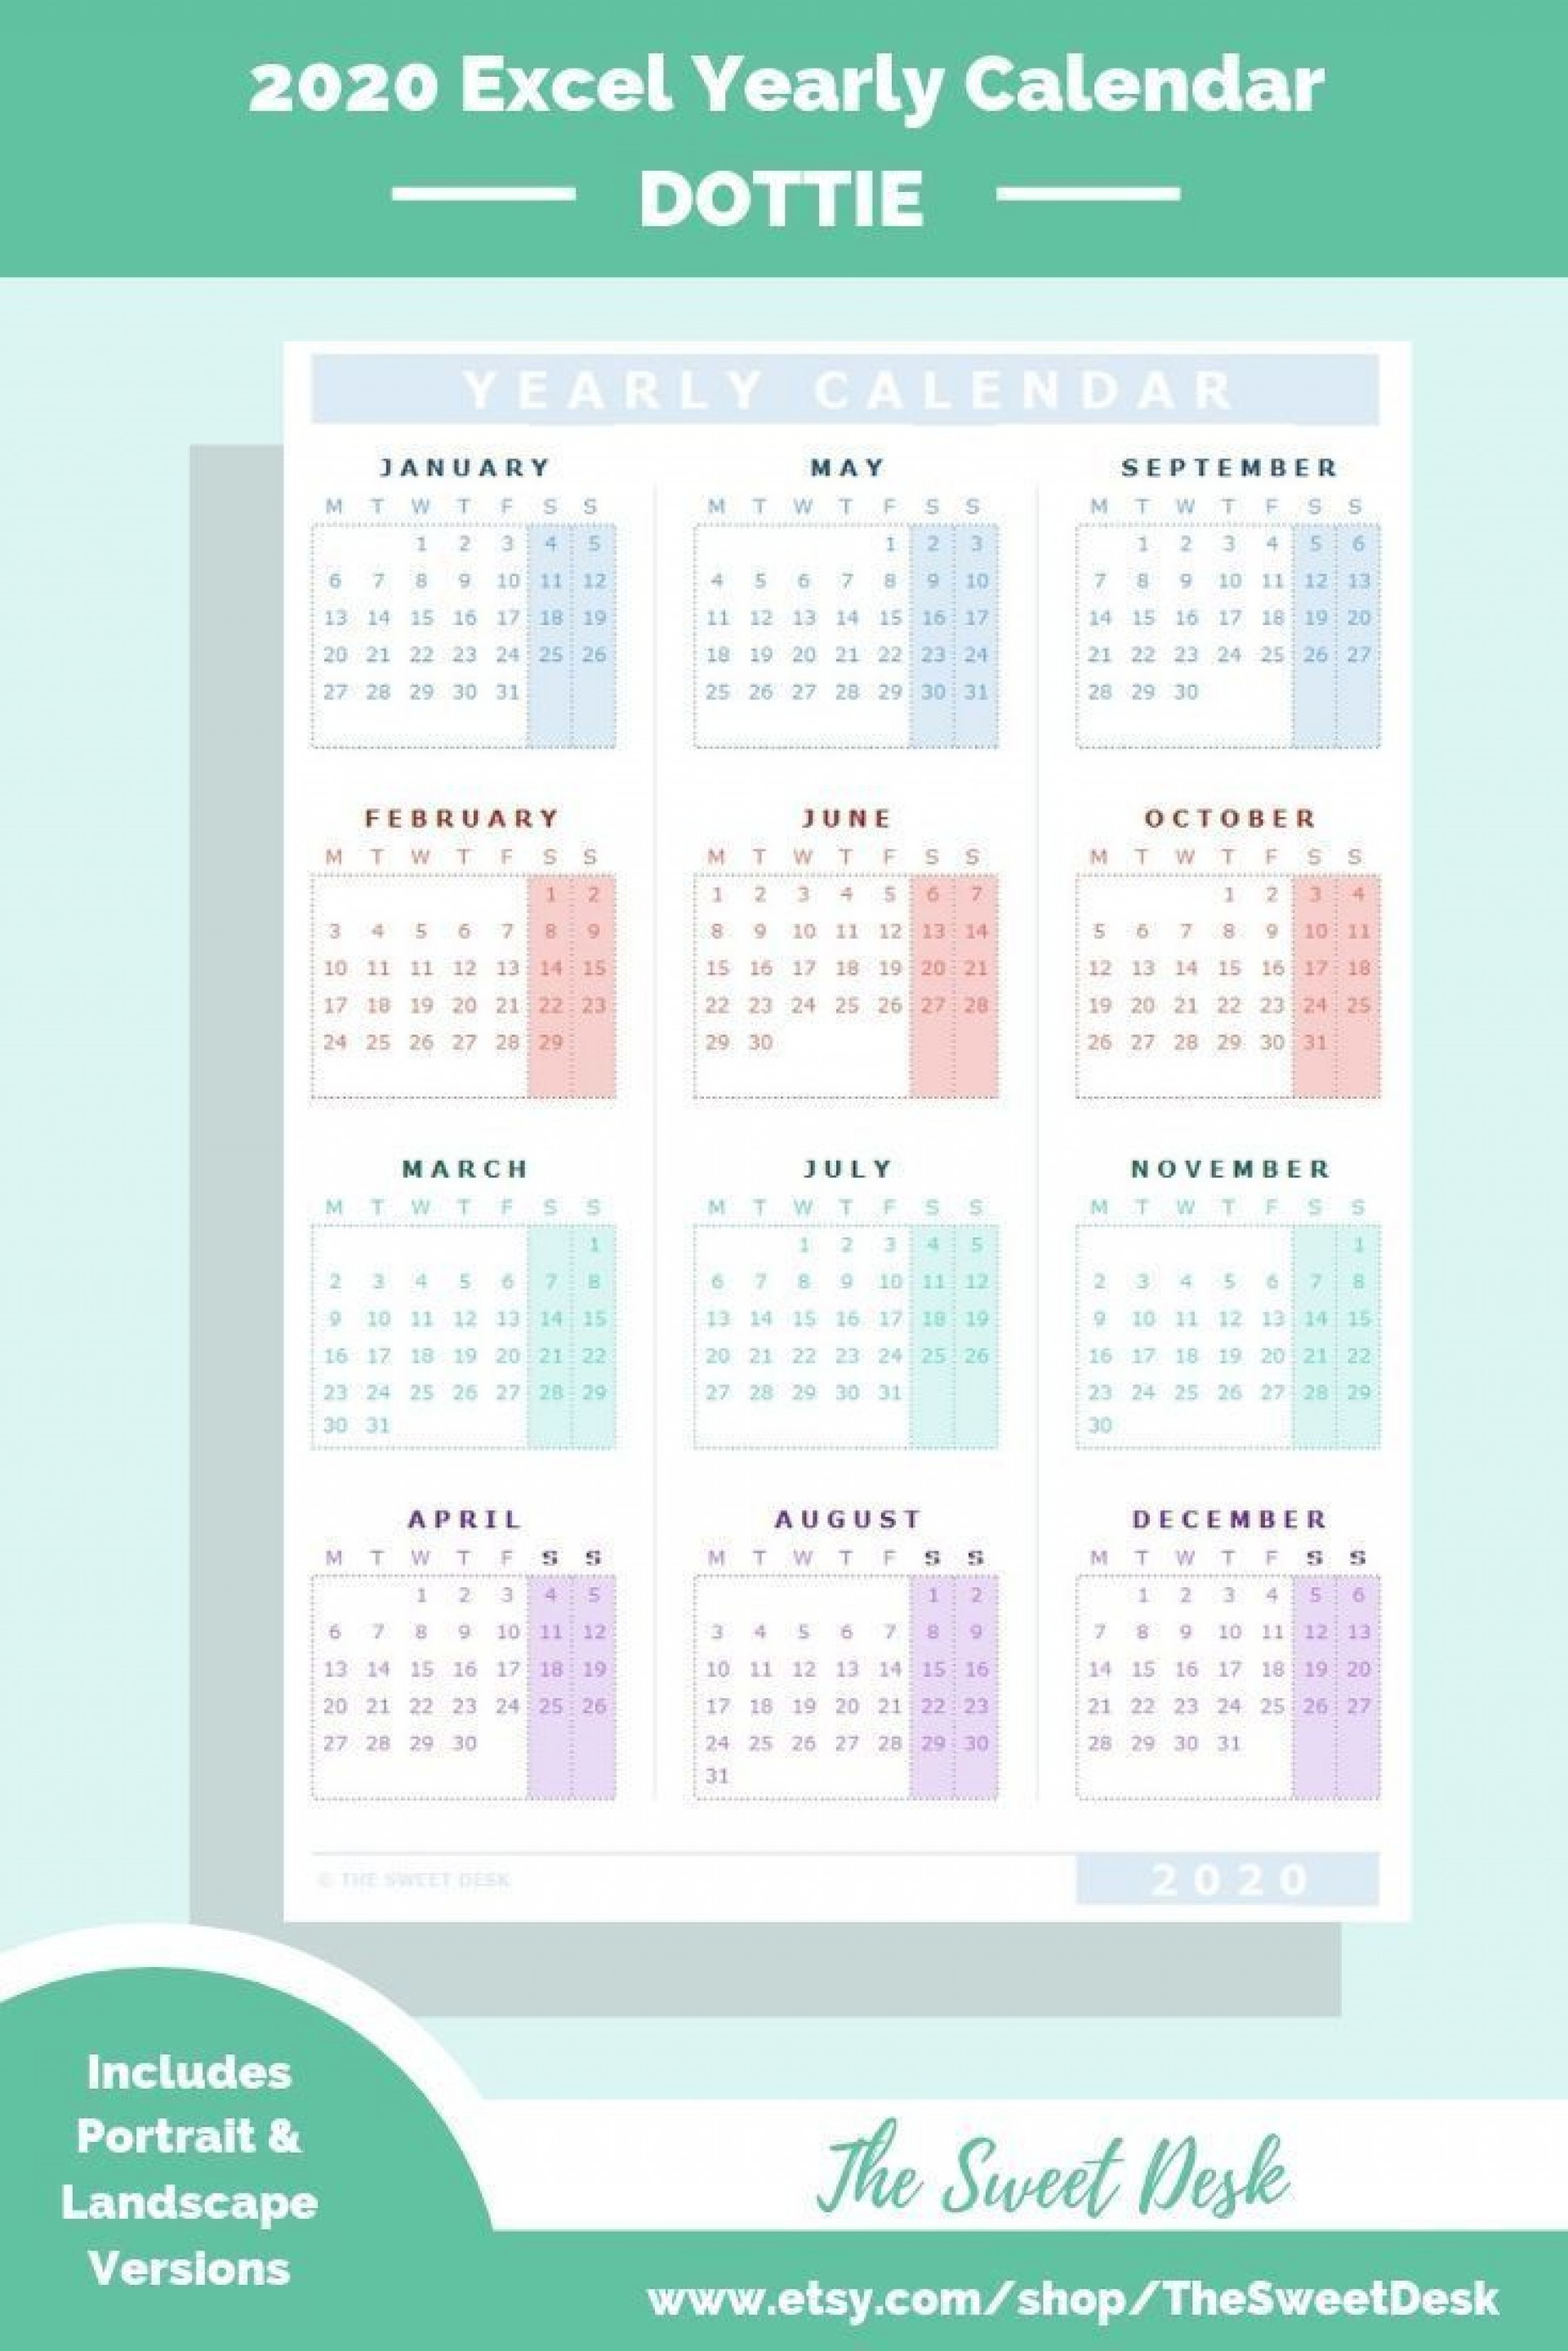 000 Awesome Calendar 2020 Template Excel Picture  Monthly Free Uk In Format Download1920